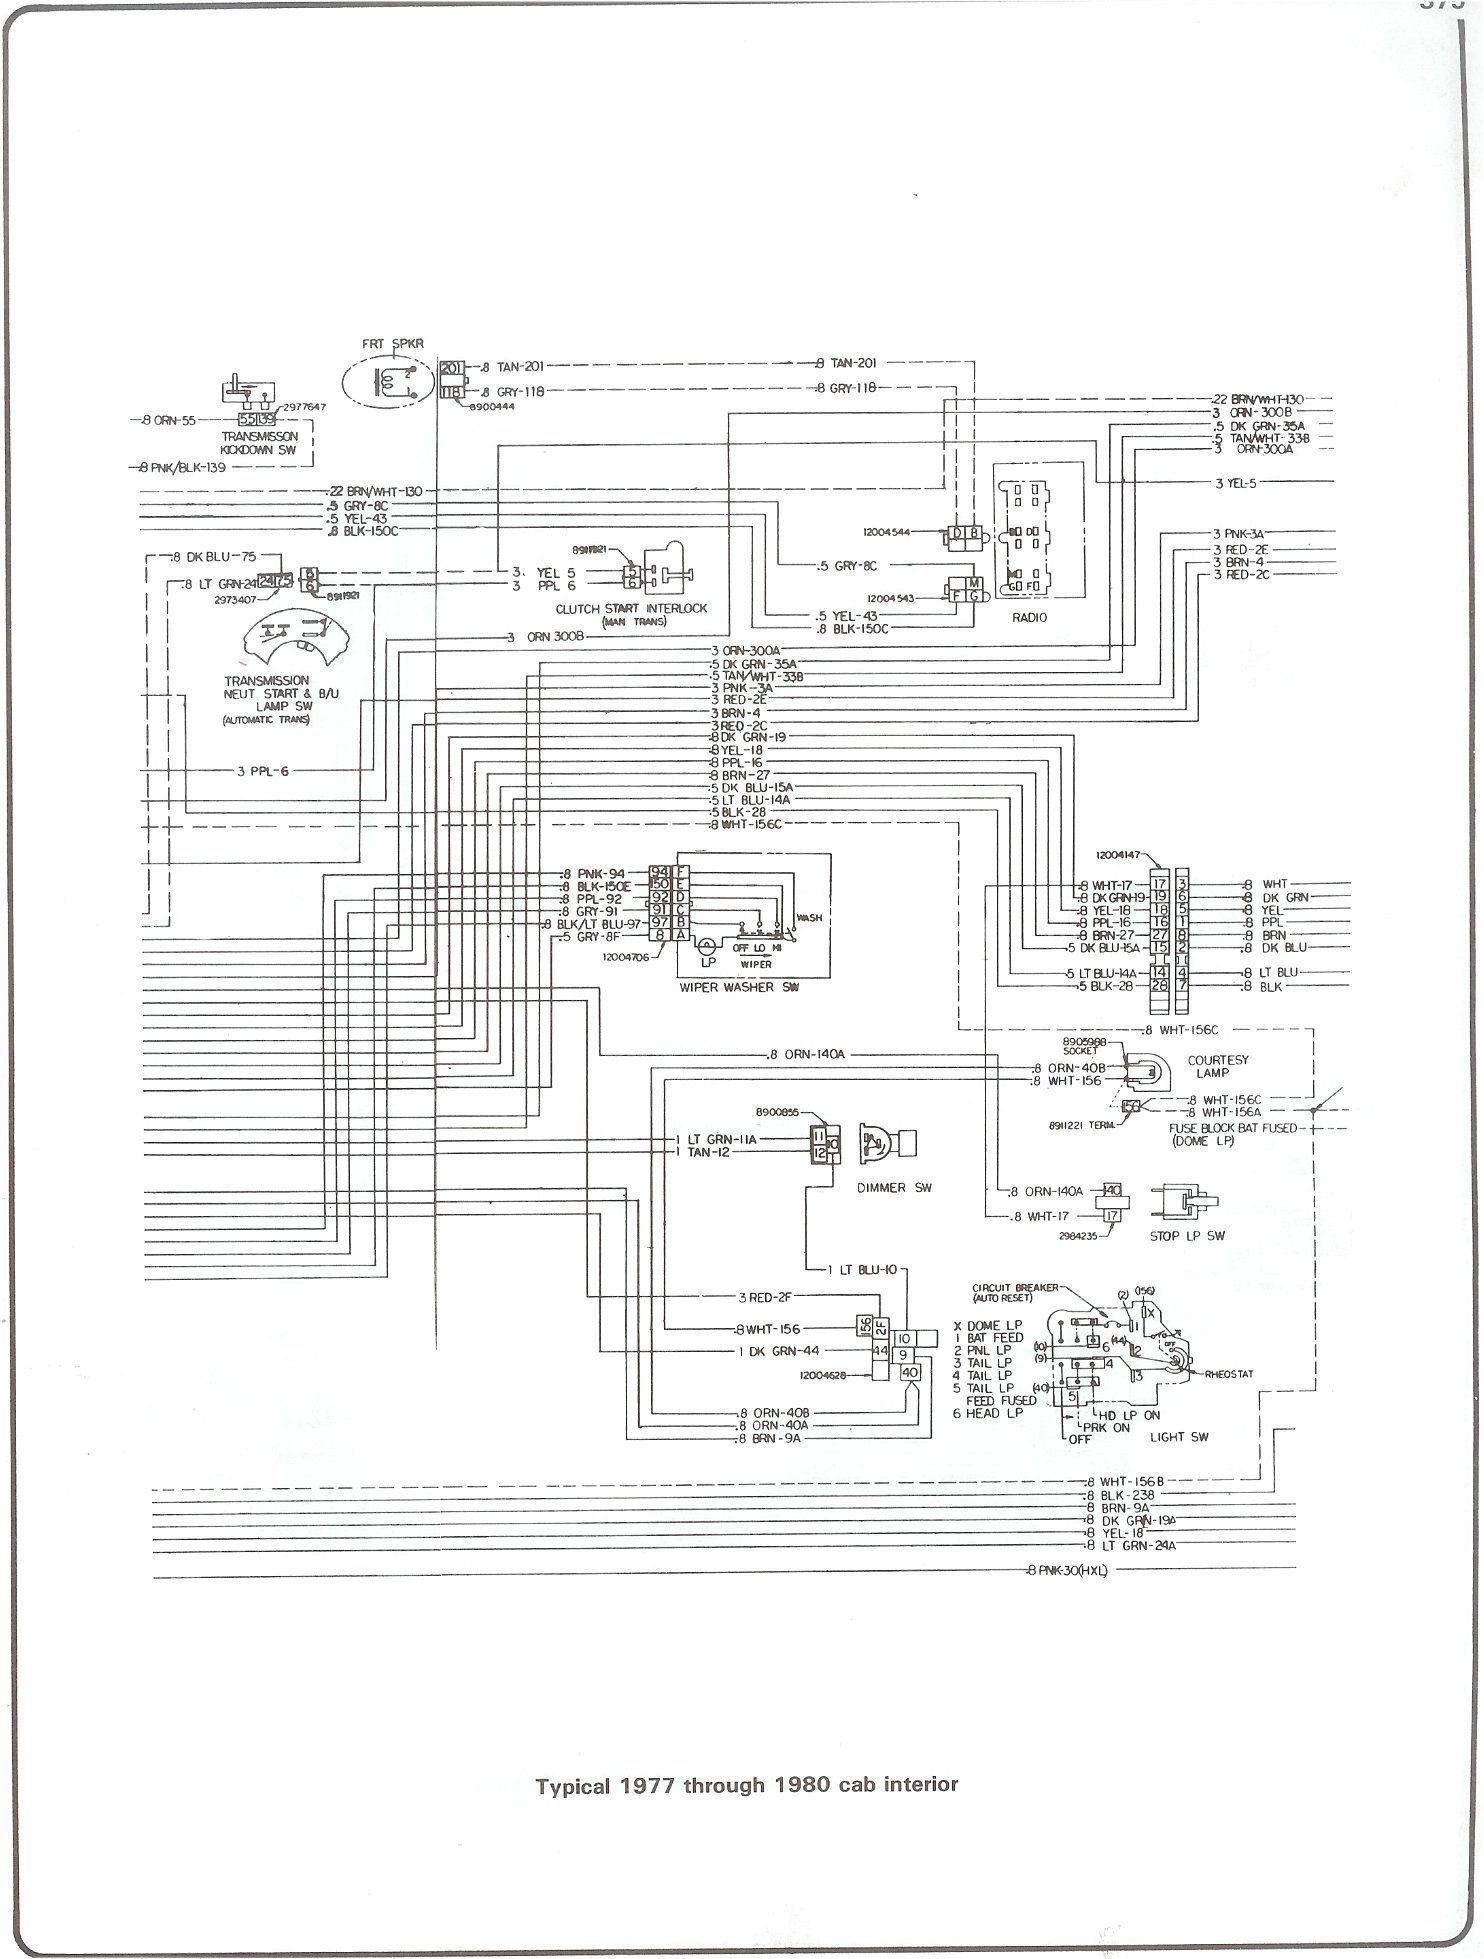 77 80_cab_inter complete 73 87 wiring diagrams 87 chevy truck wiring diagram at creativeand.co